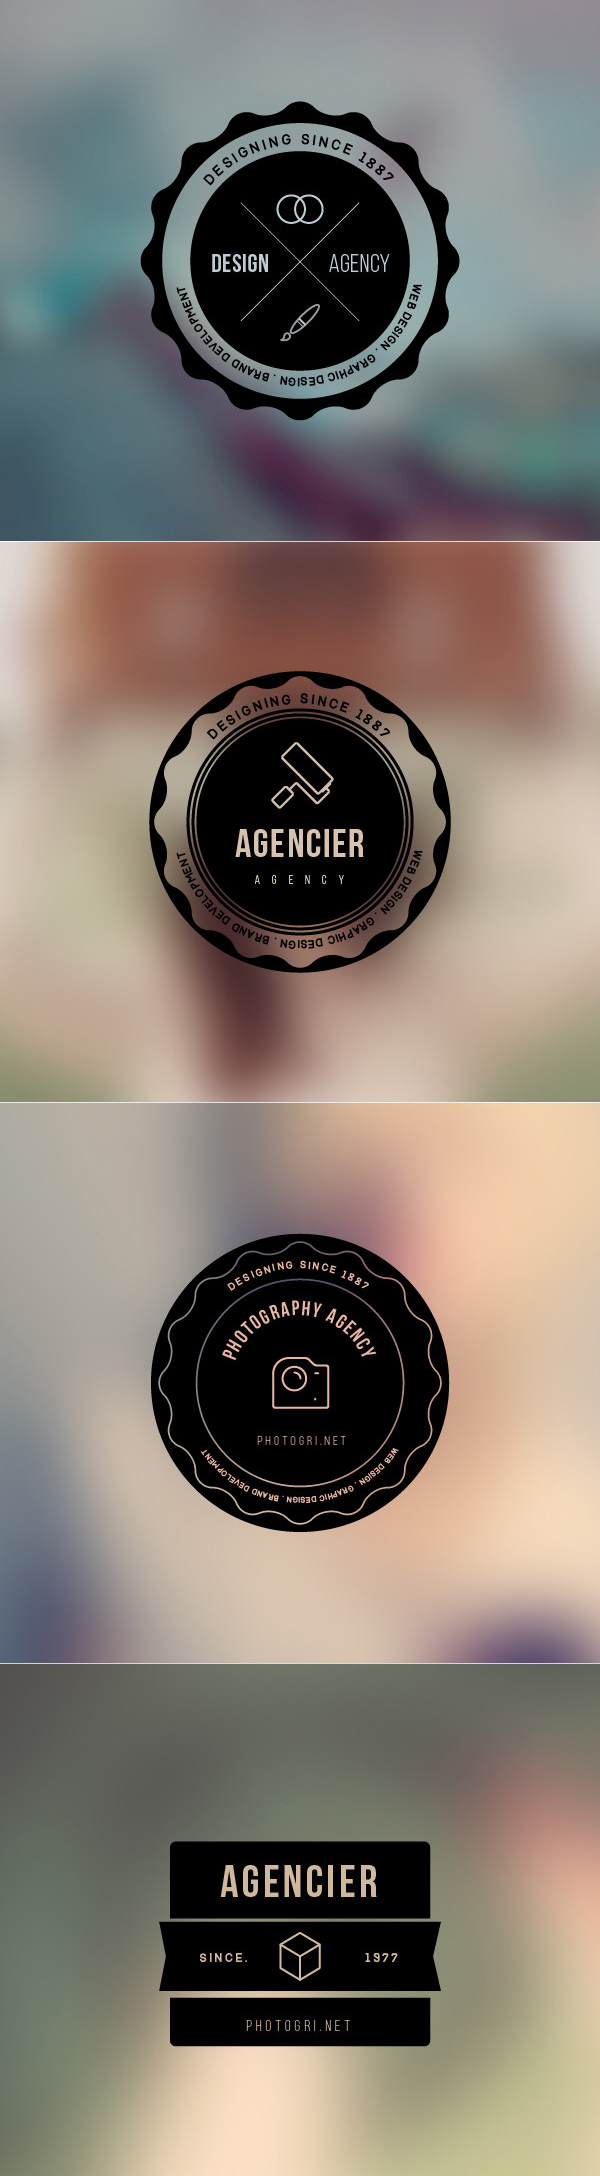 Free Vector Badges PSD Files